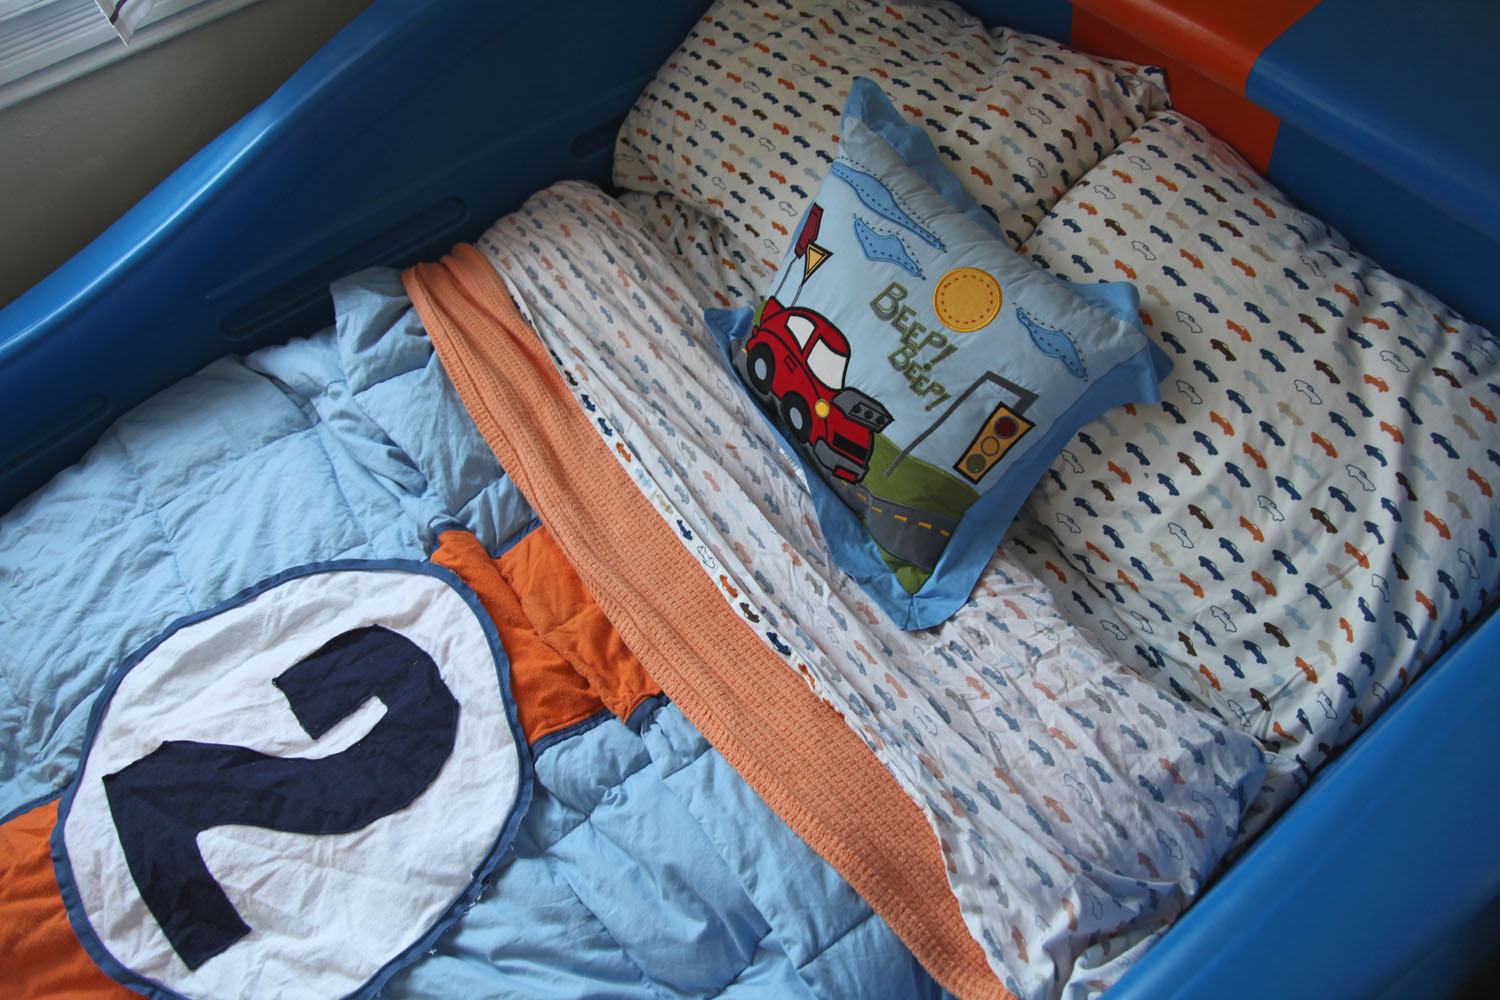 Sam S Room The Lemans Gulf Livery Car Bed Stately Kitsch